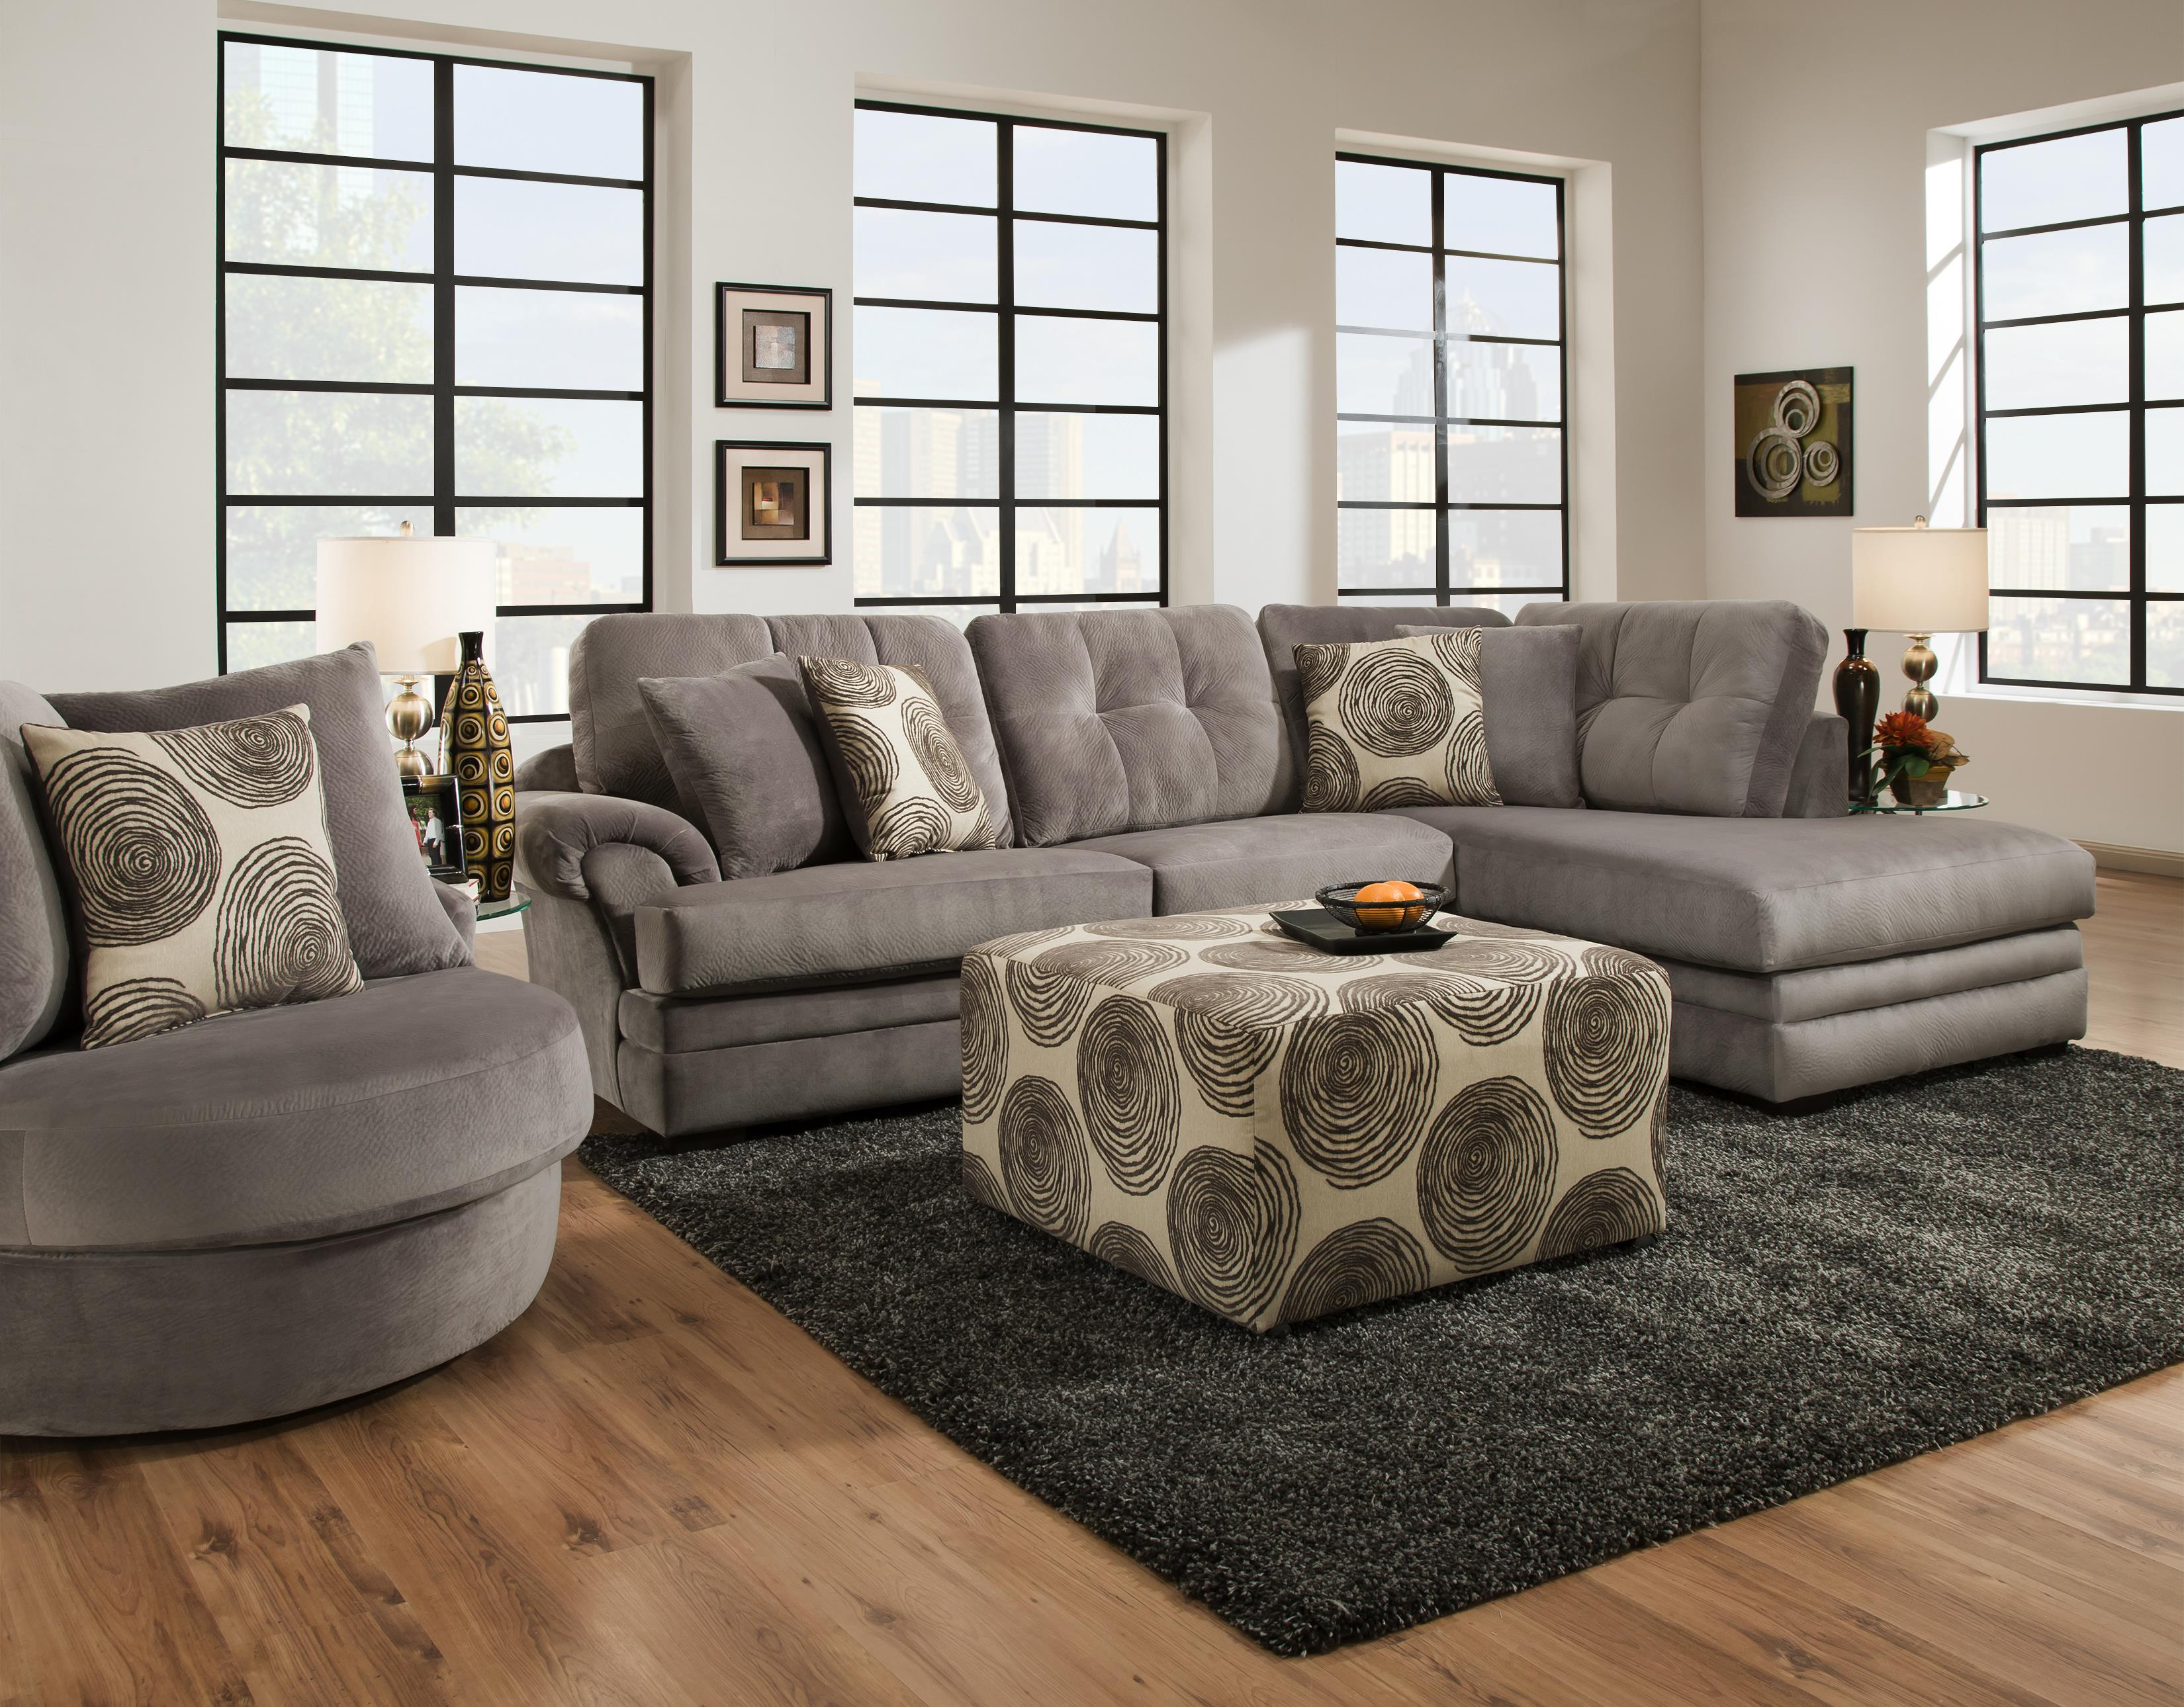 16b0 small sectional sofa with chaise on right side by for 2 living rooms side by side